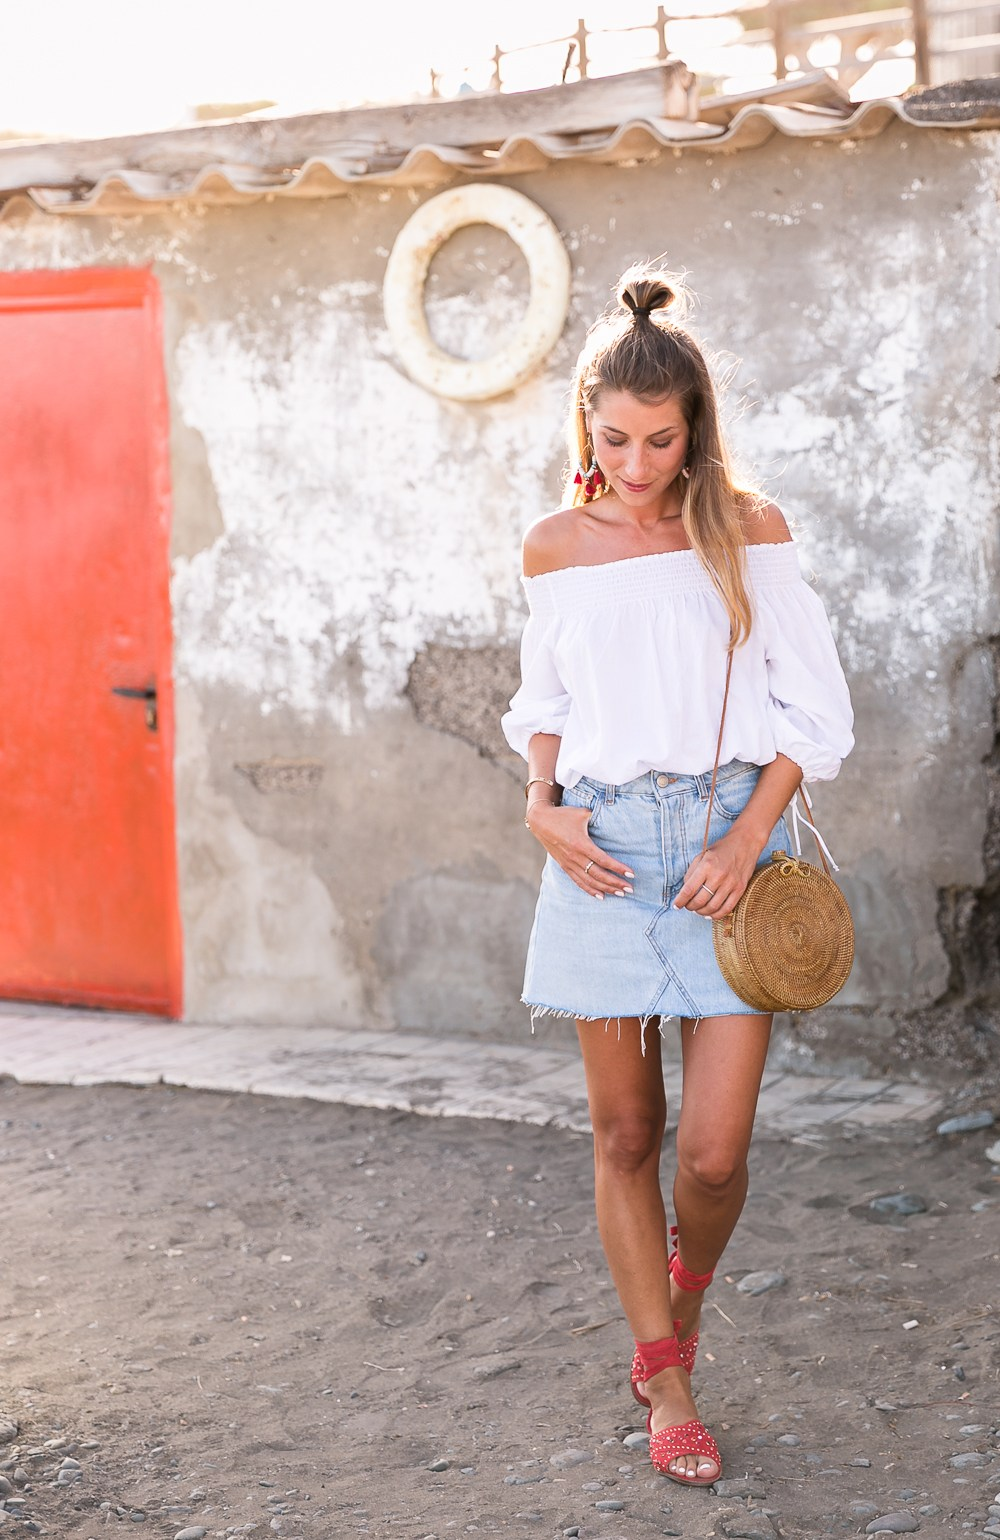 red shoes outfit jeans skirt denim off the shoulder top straw bag summerlook fashionblog 5